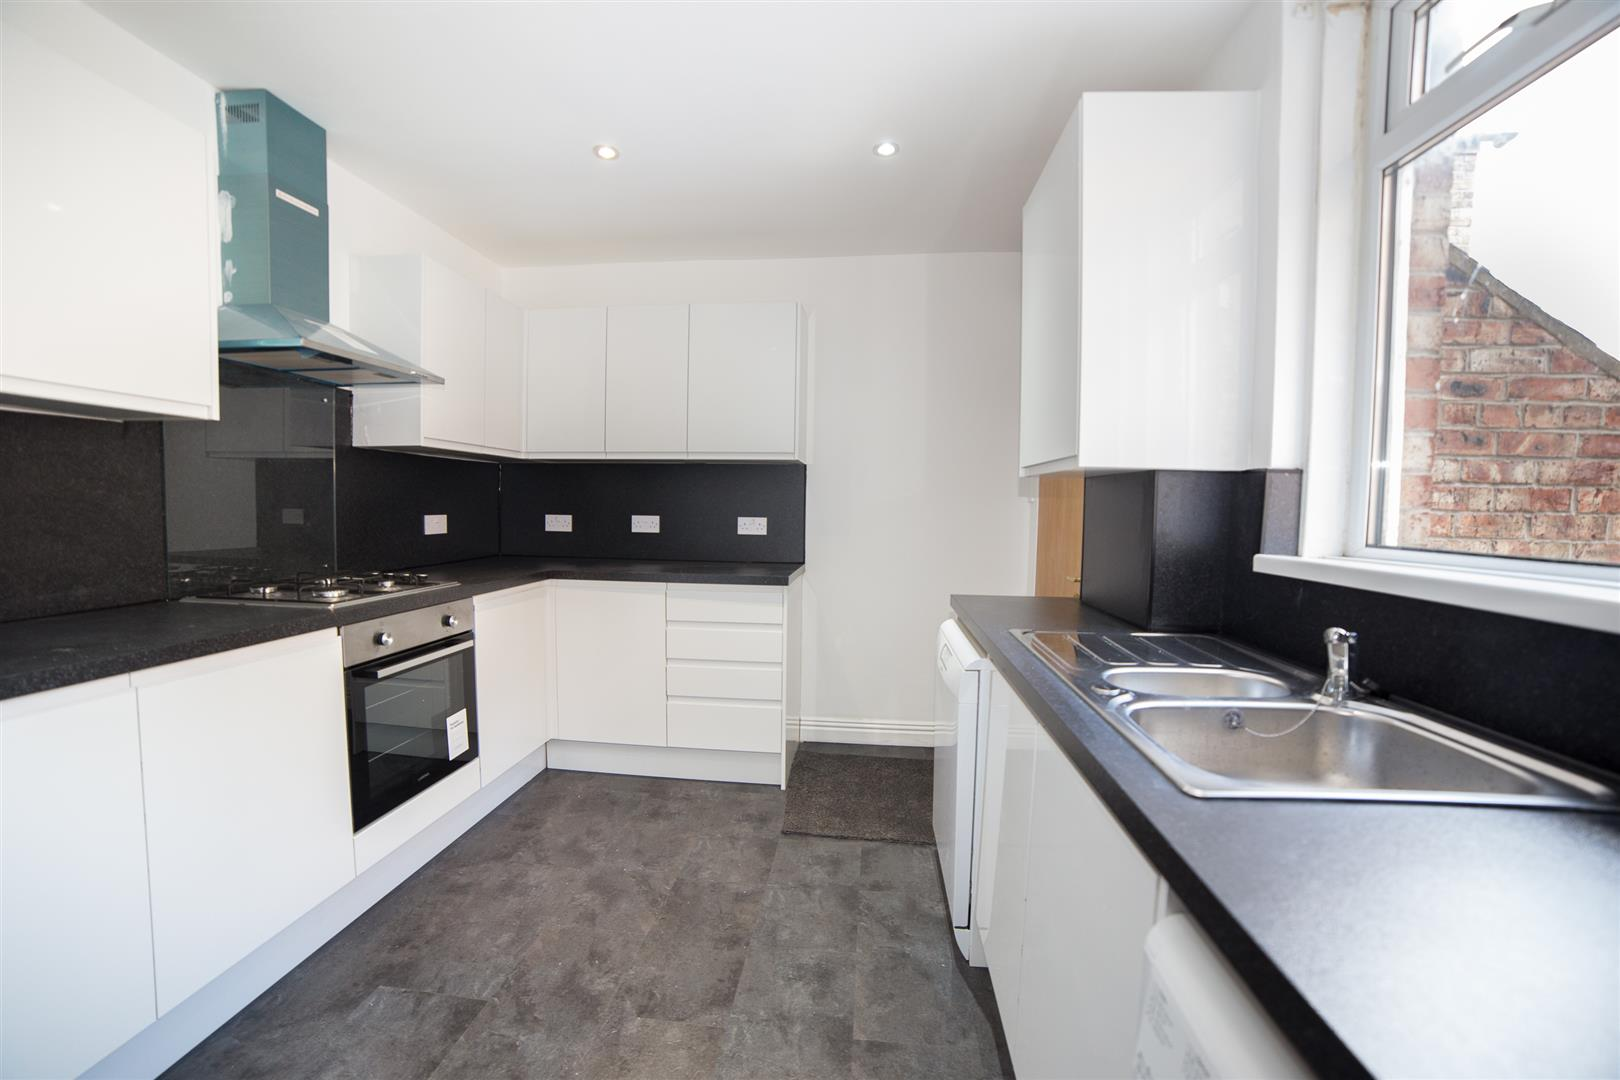 7 bed maisonette to rent in Newcastle Upon Tyne, NE2 1LB 4